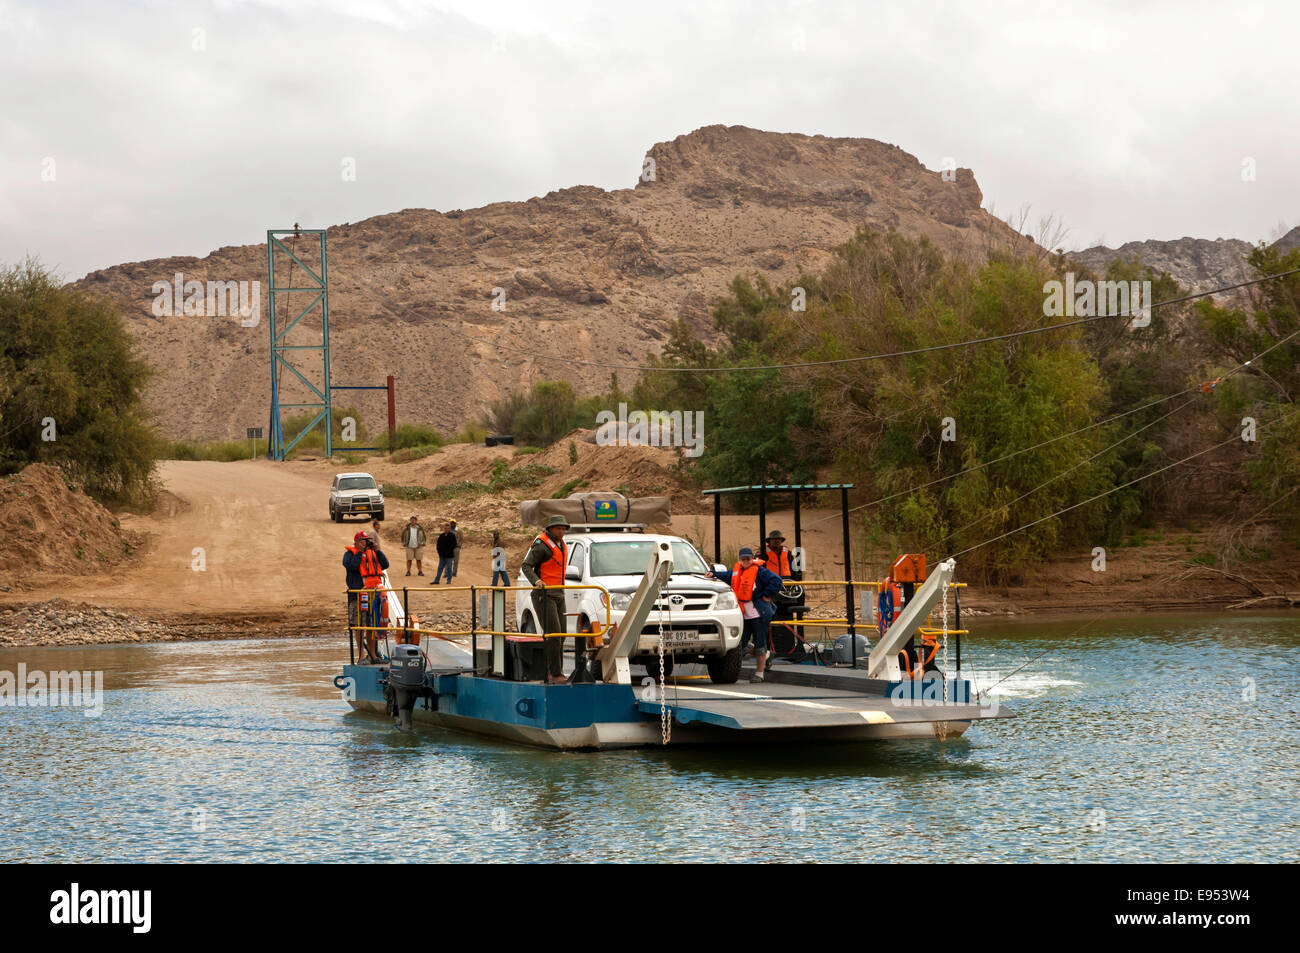 Car on the Octha ferry pontoon across the Orange River between South Africa and Namibia, on the way to the Sendelingsdrif - Stock Image